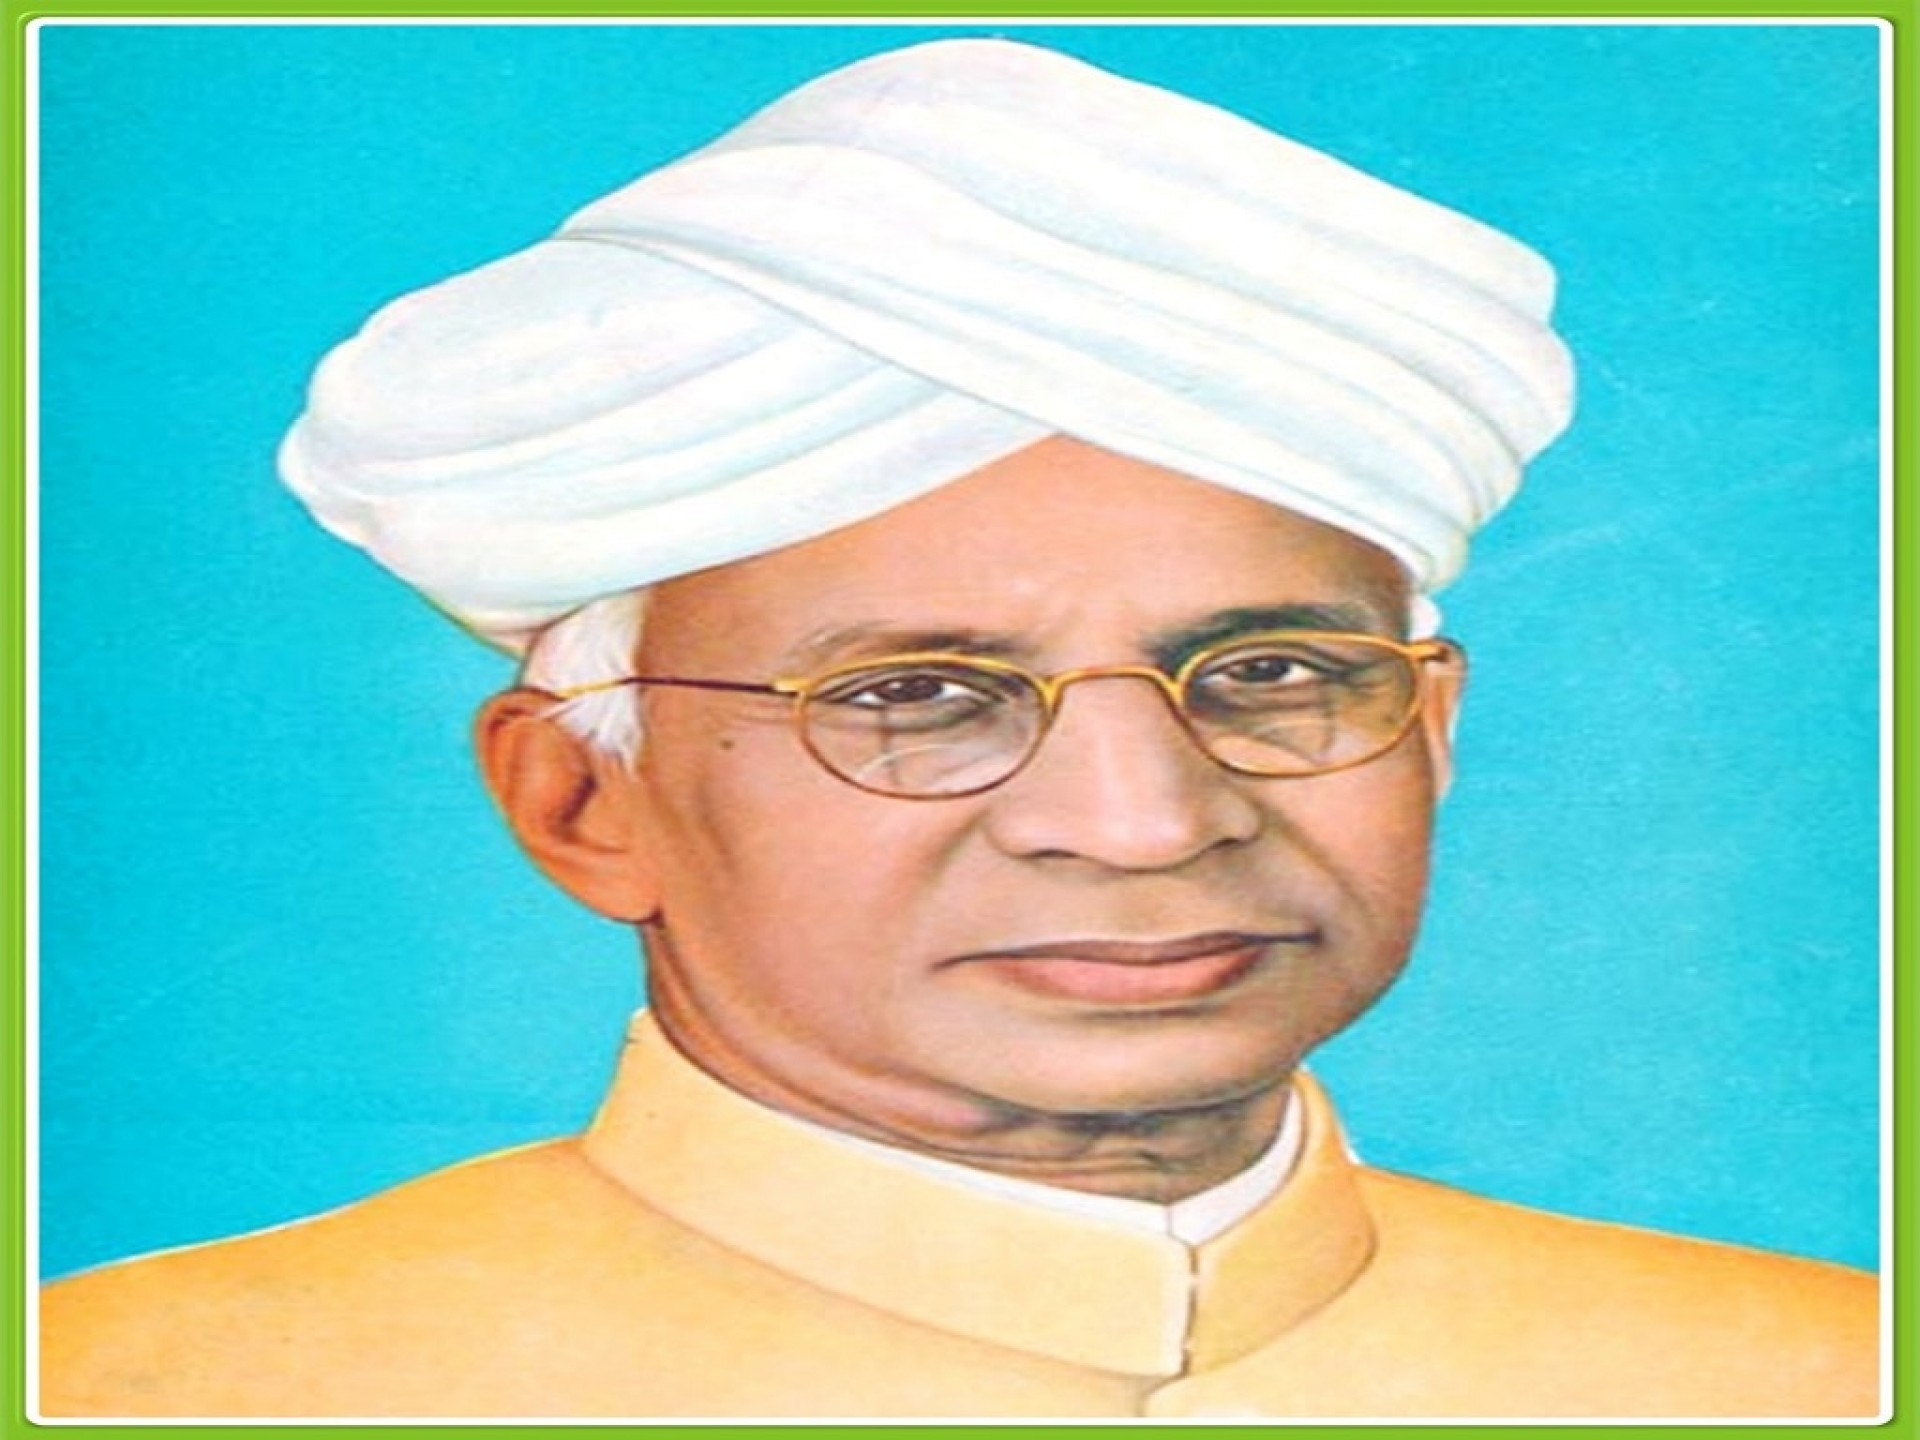 007 Sarvepalli Radhakrishnan Essay Example On Teachers Day In Fascinating India 1920